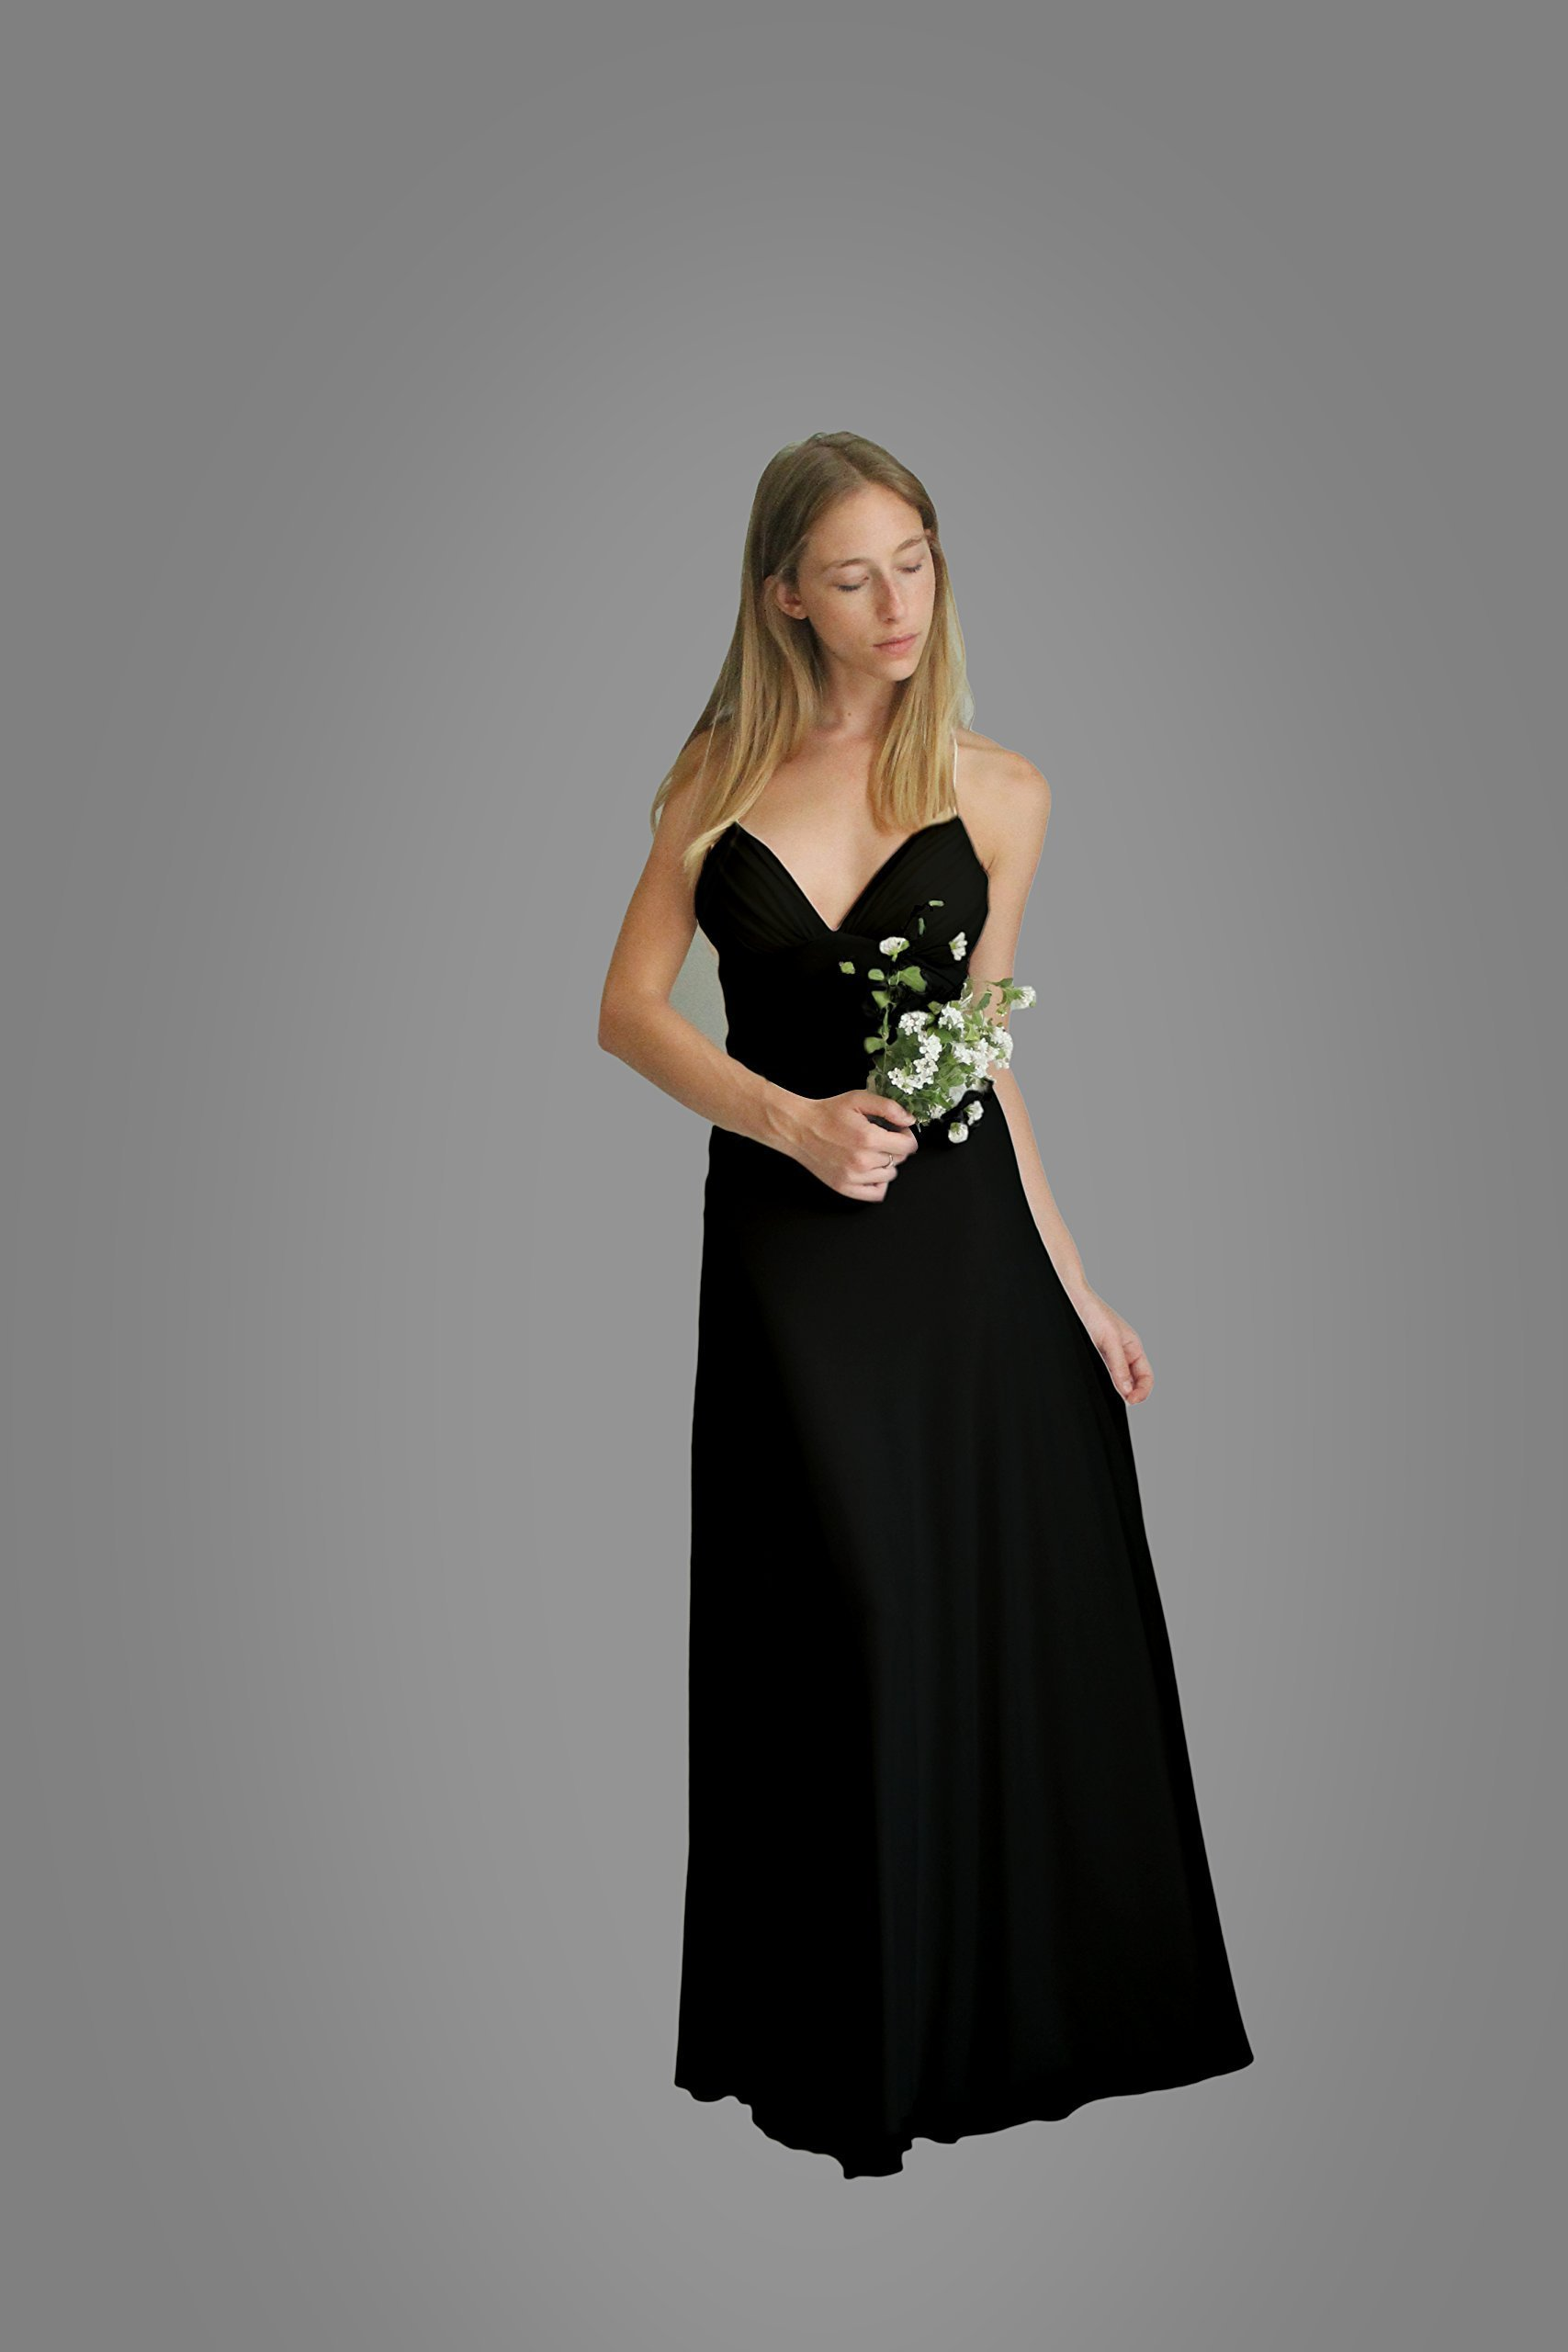 Women's Dress, Black Evening Dress, Size L, Maxi Long Dress for Wedding or Bridesmaid, Chiffon Lycra Classic Gown